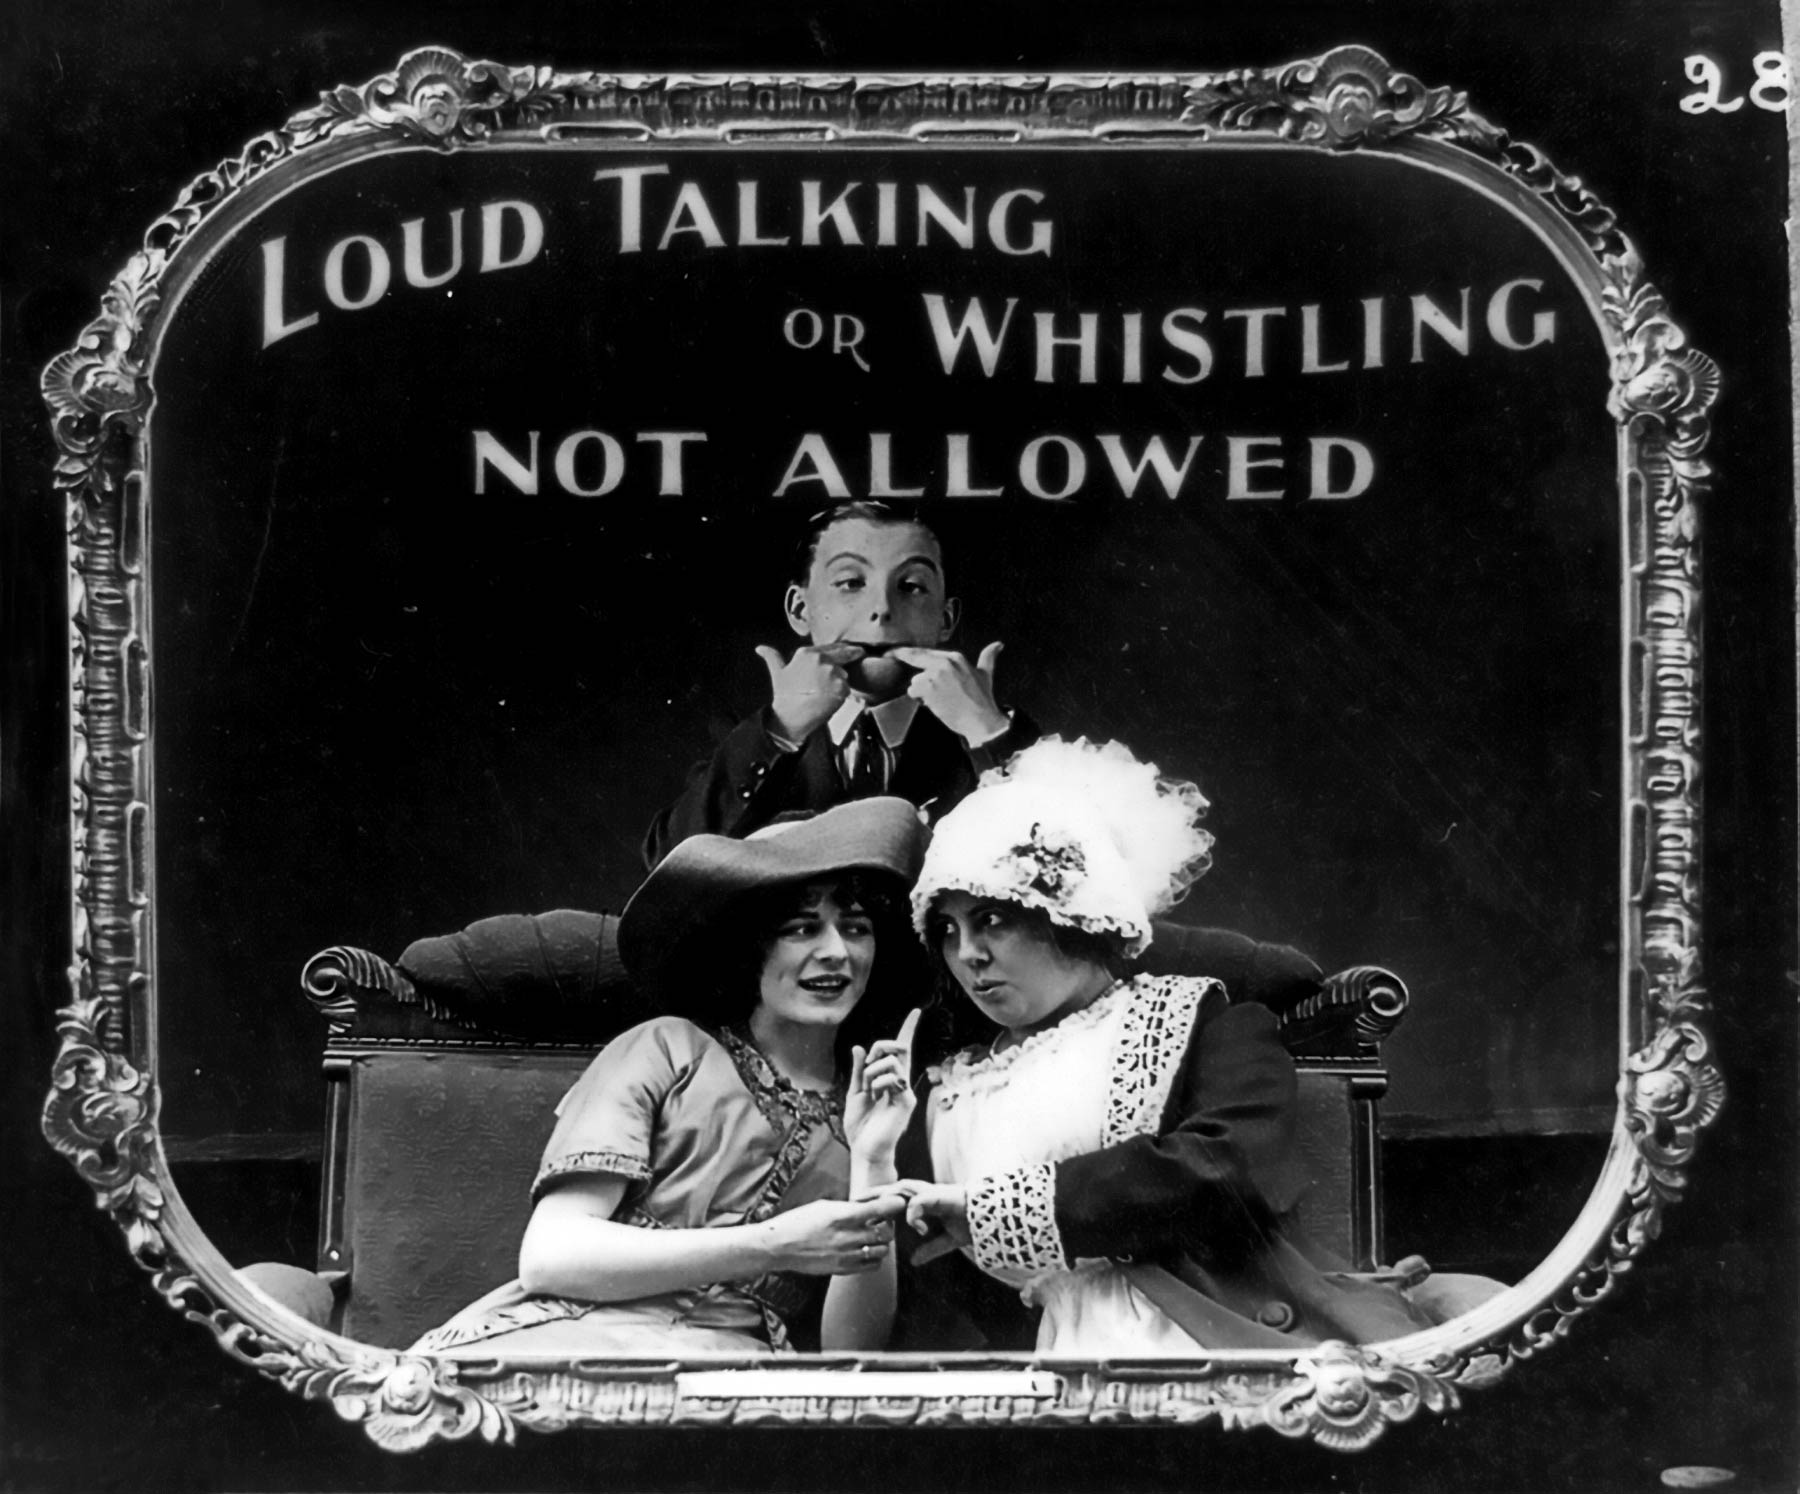 An old picture portraying three people. One of them is whistling, the other two are chattering. Text says: Loud talking or whistling not allowed